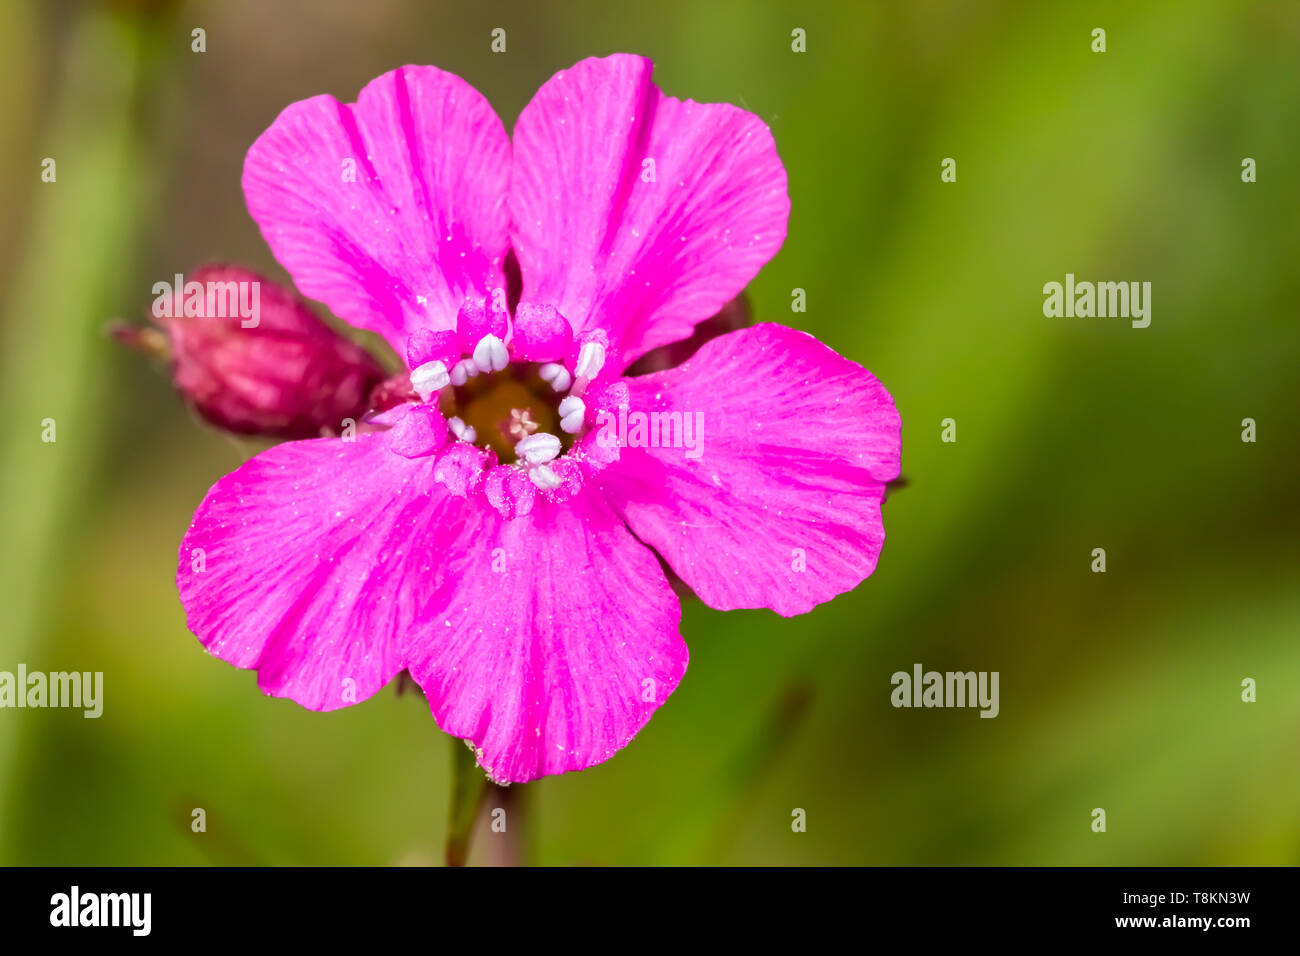 Colour macro photograph of single isolated red campion flower on blurred green background. Poole, Dorset, England. Stock Photo